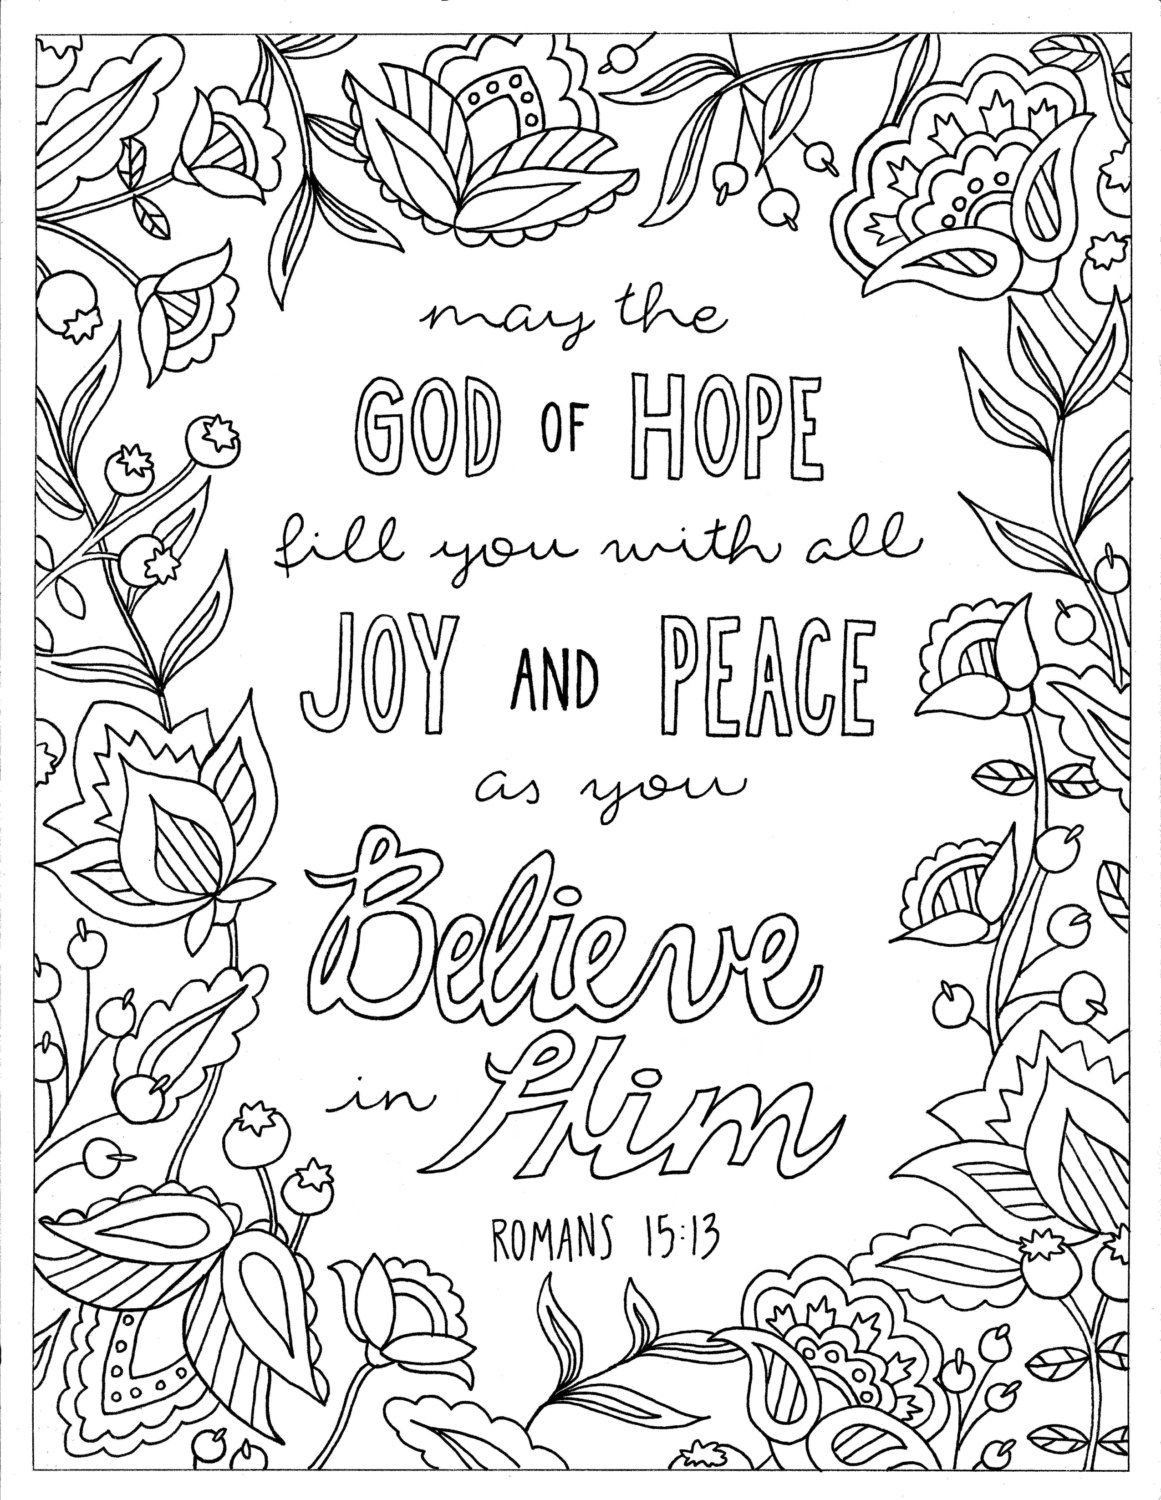 Printable Bible Coloring Pages For Kids Book Of John  God of Hope Coloring Page Romans 15 13 Printable